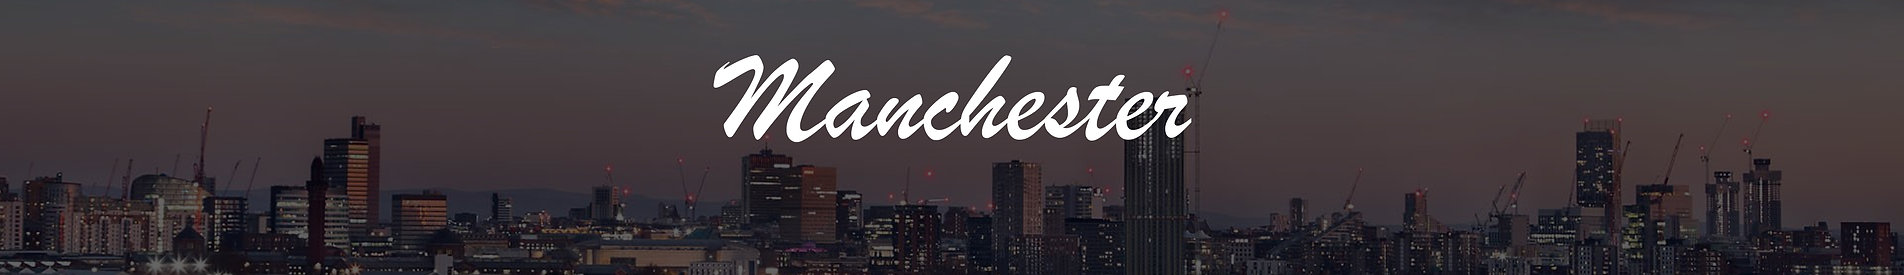 manchester page cover.jpg